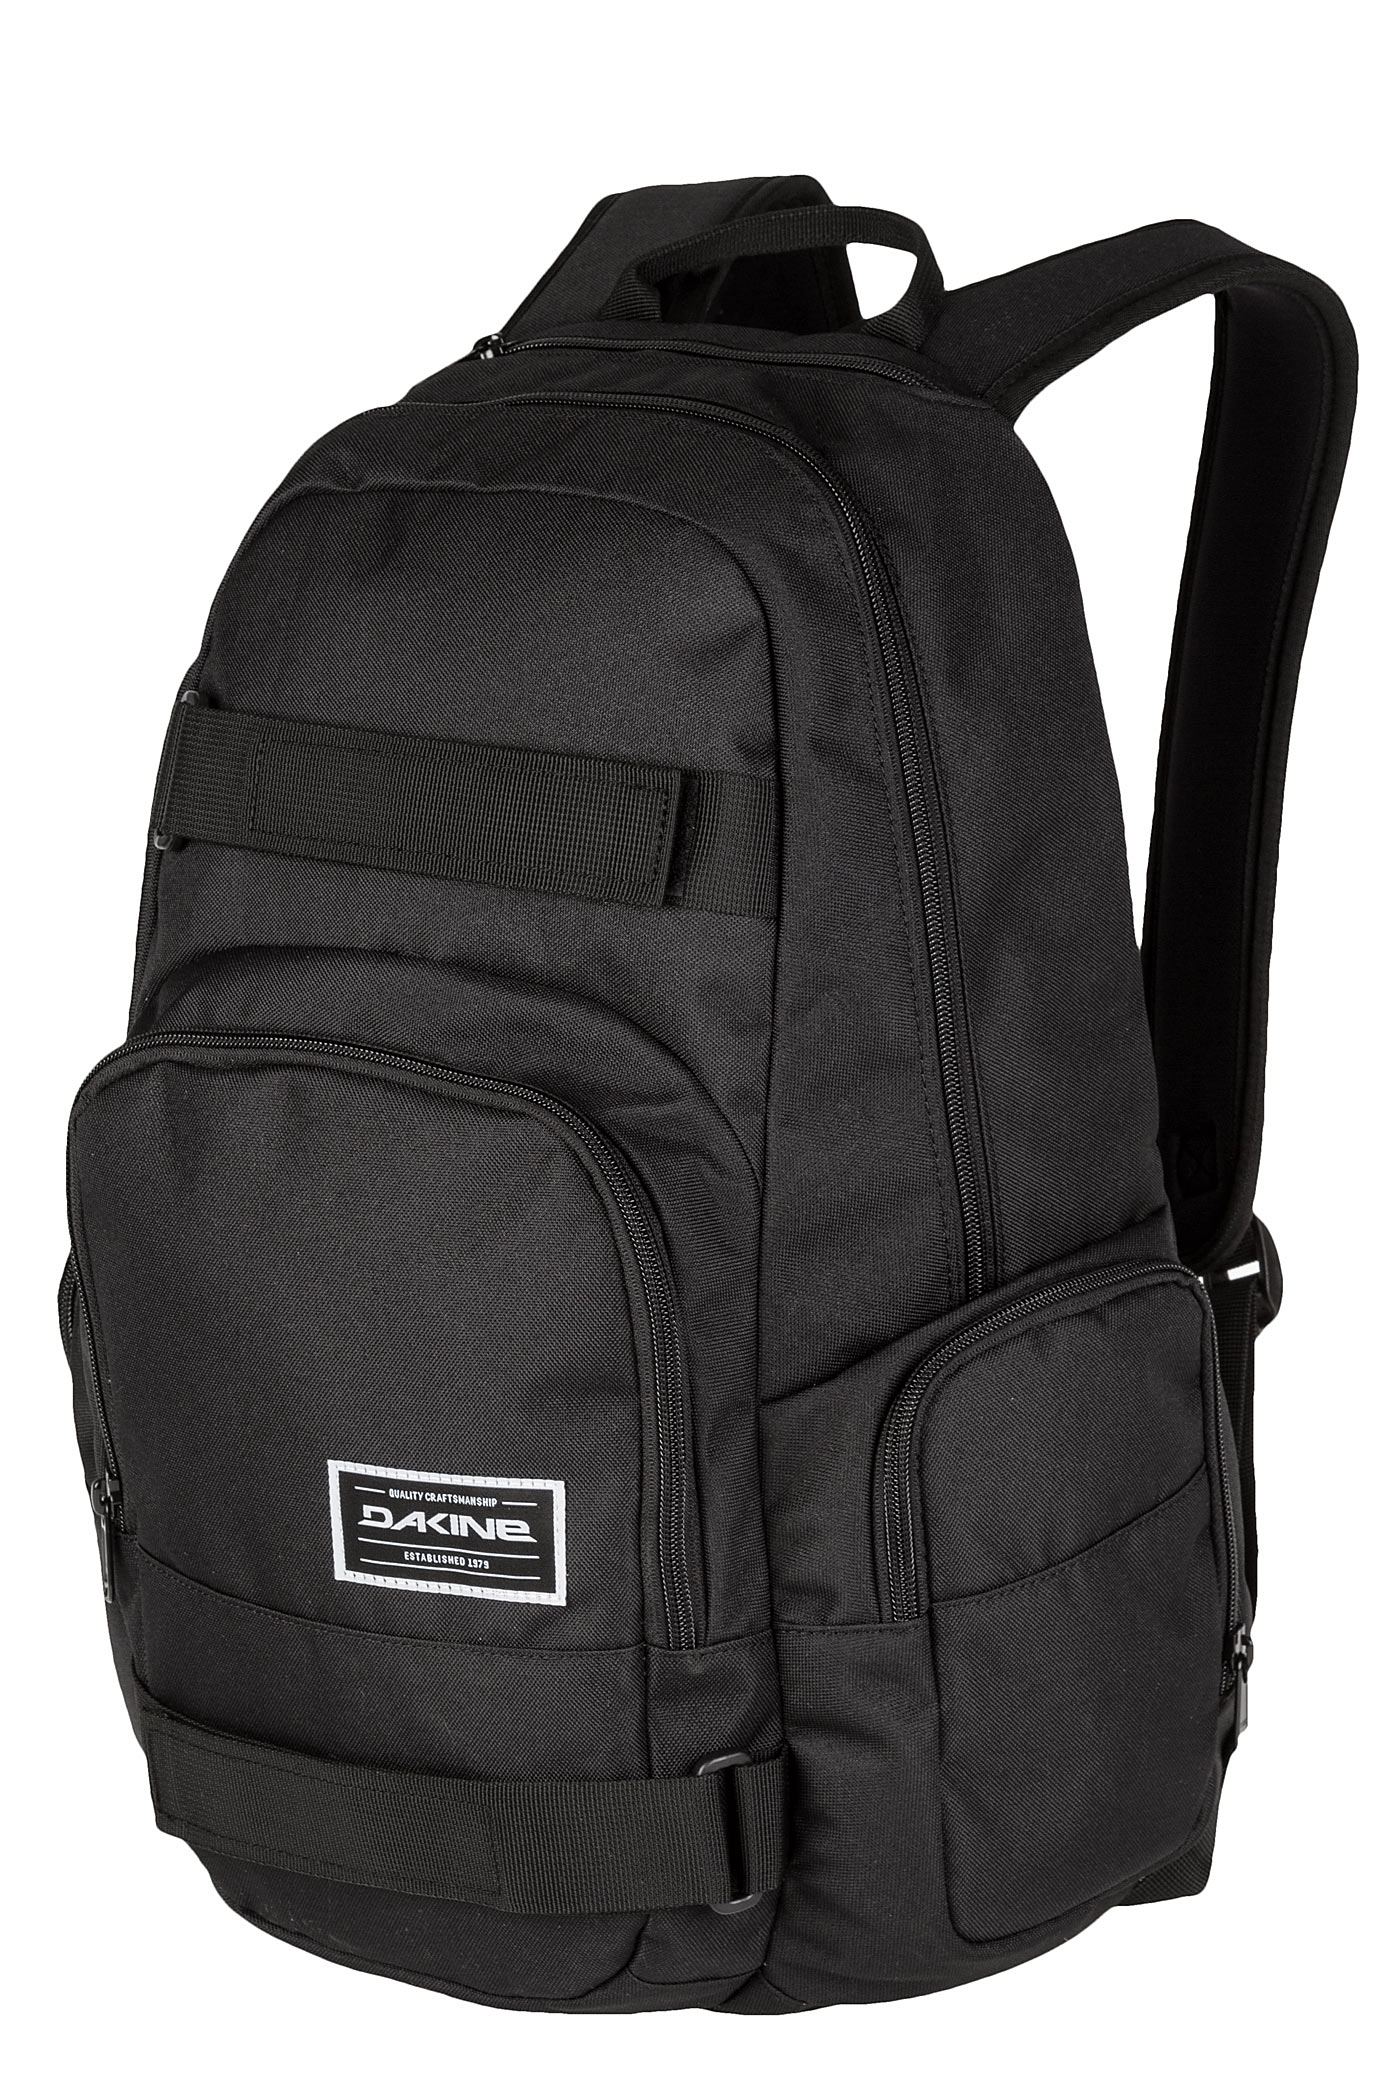 dakine atlas up mochila 25l black comprar en skatedeluxe. Black Bedroom Furniture Sets. Home Design Ideas